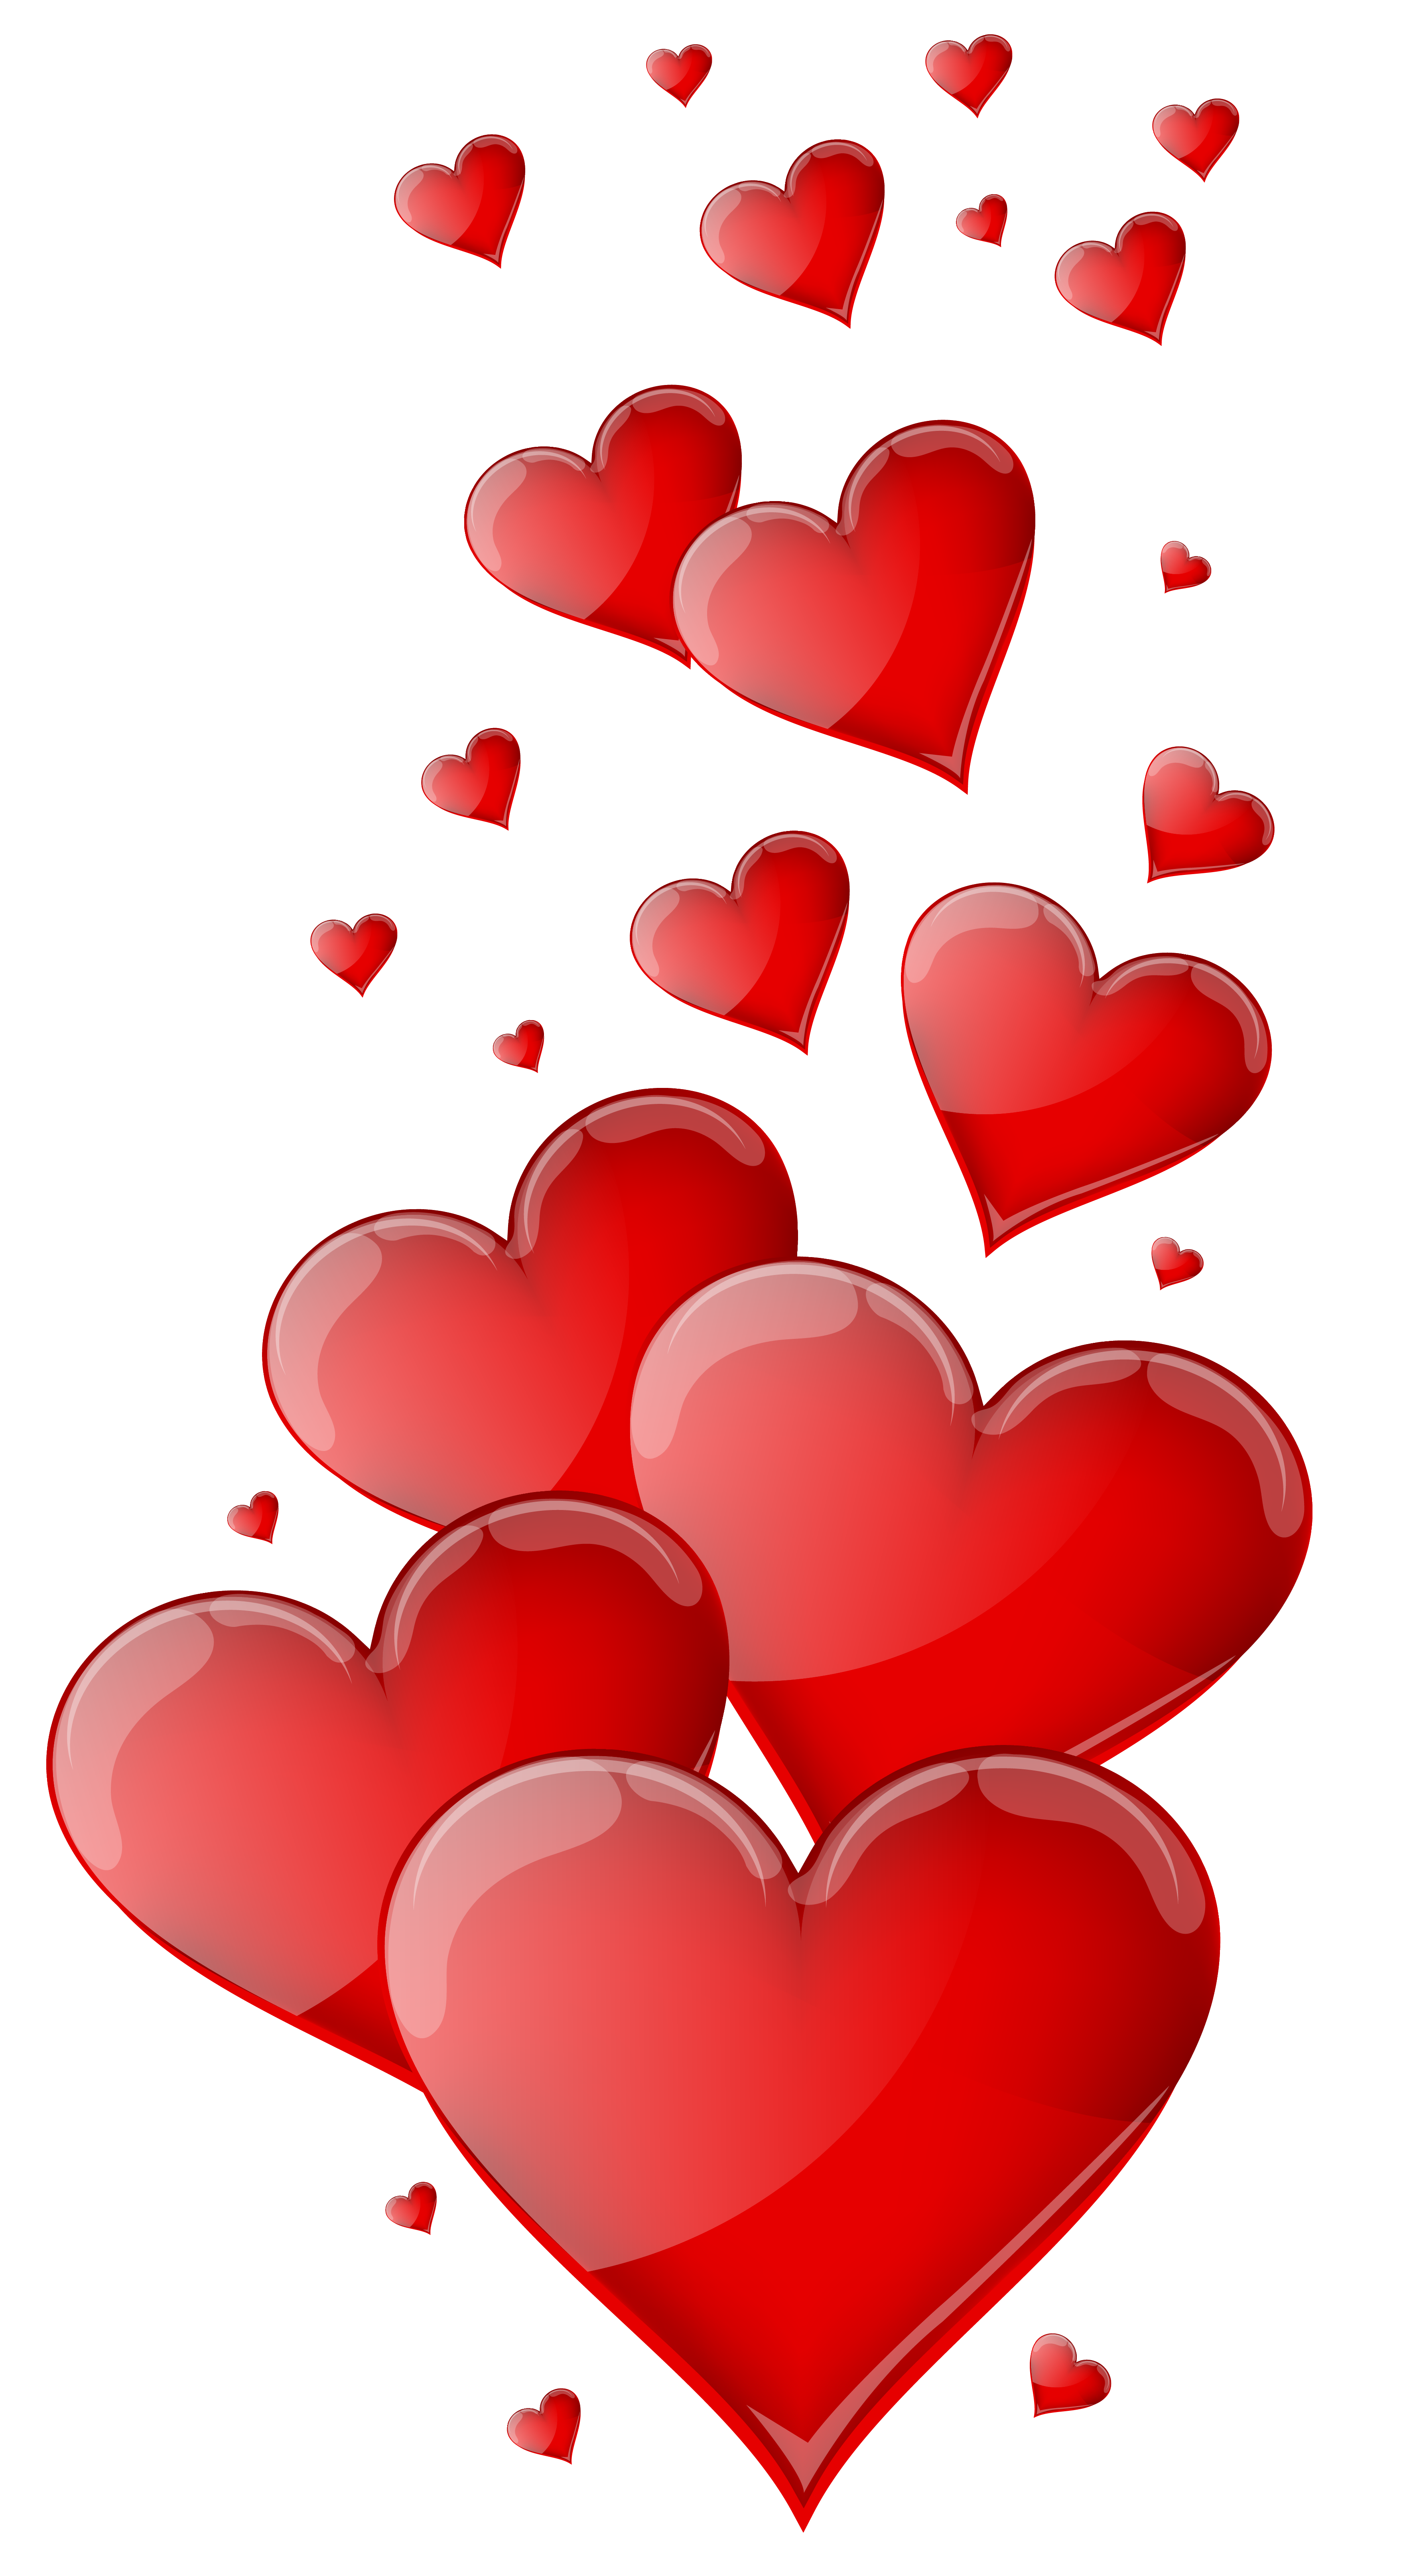 Hearts clipart vector royalty free Red Hearts PNG Clipart Image vector royalty free